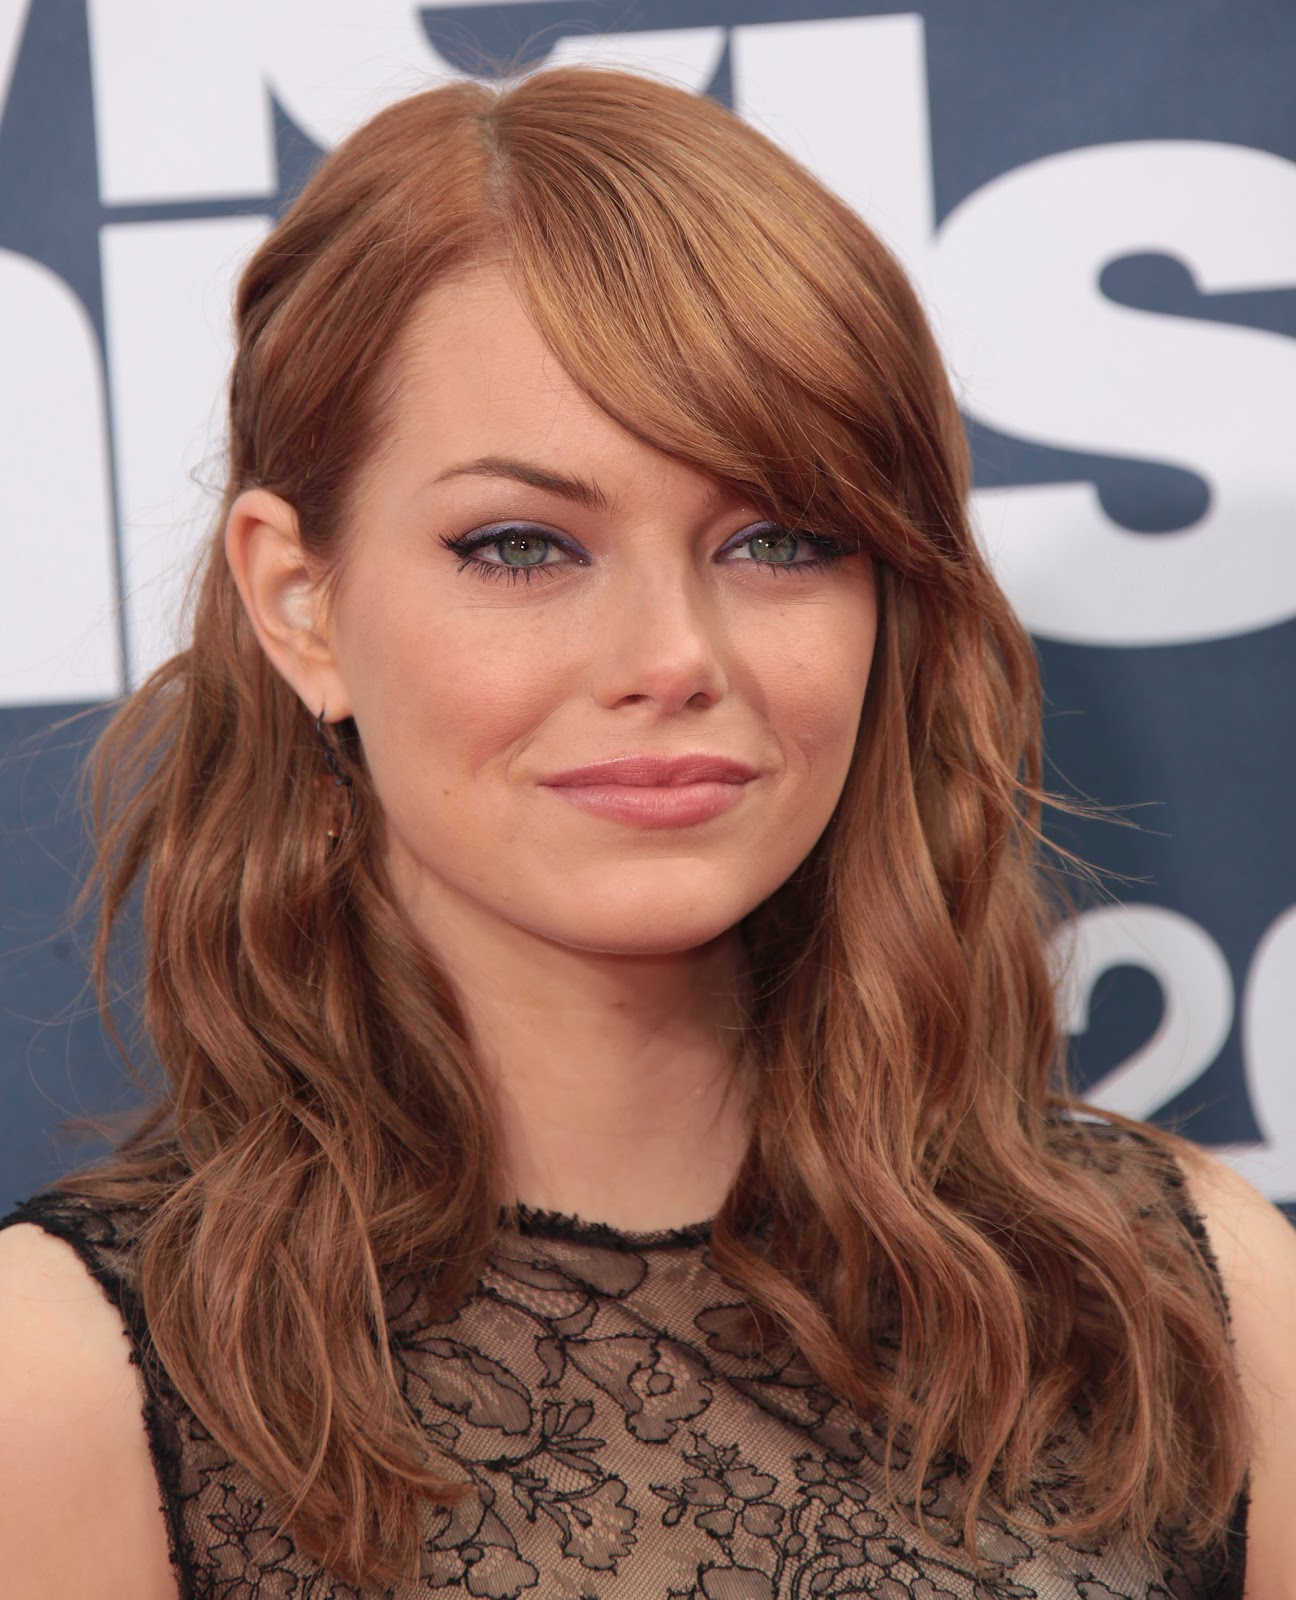 http://3.bp.blogspot.com/-OsZrNuuYqX0/TmJ8960vlWI/AAAAAAAAAfM/Sup_voO051A/s1600/Emma-Stone-pics-photos-images-pictures-films-movies-hot+%25287%2529.jpg